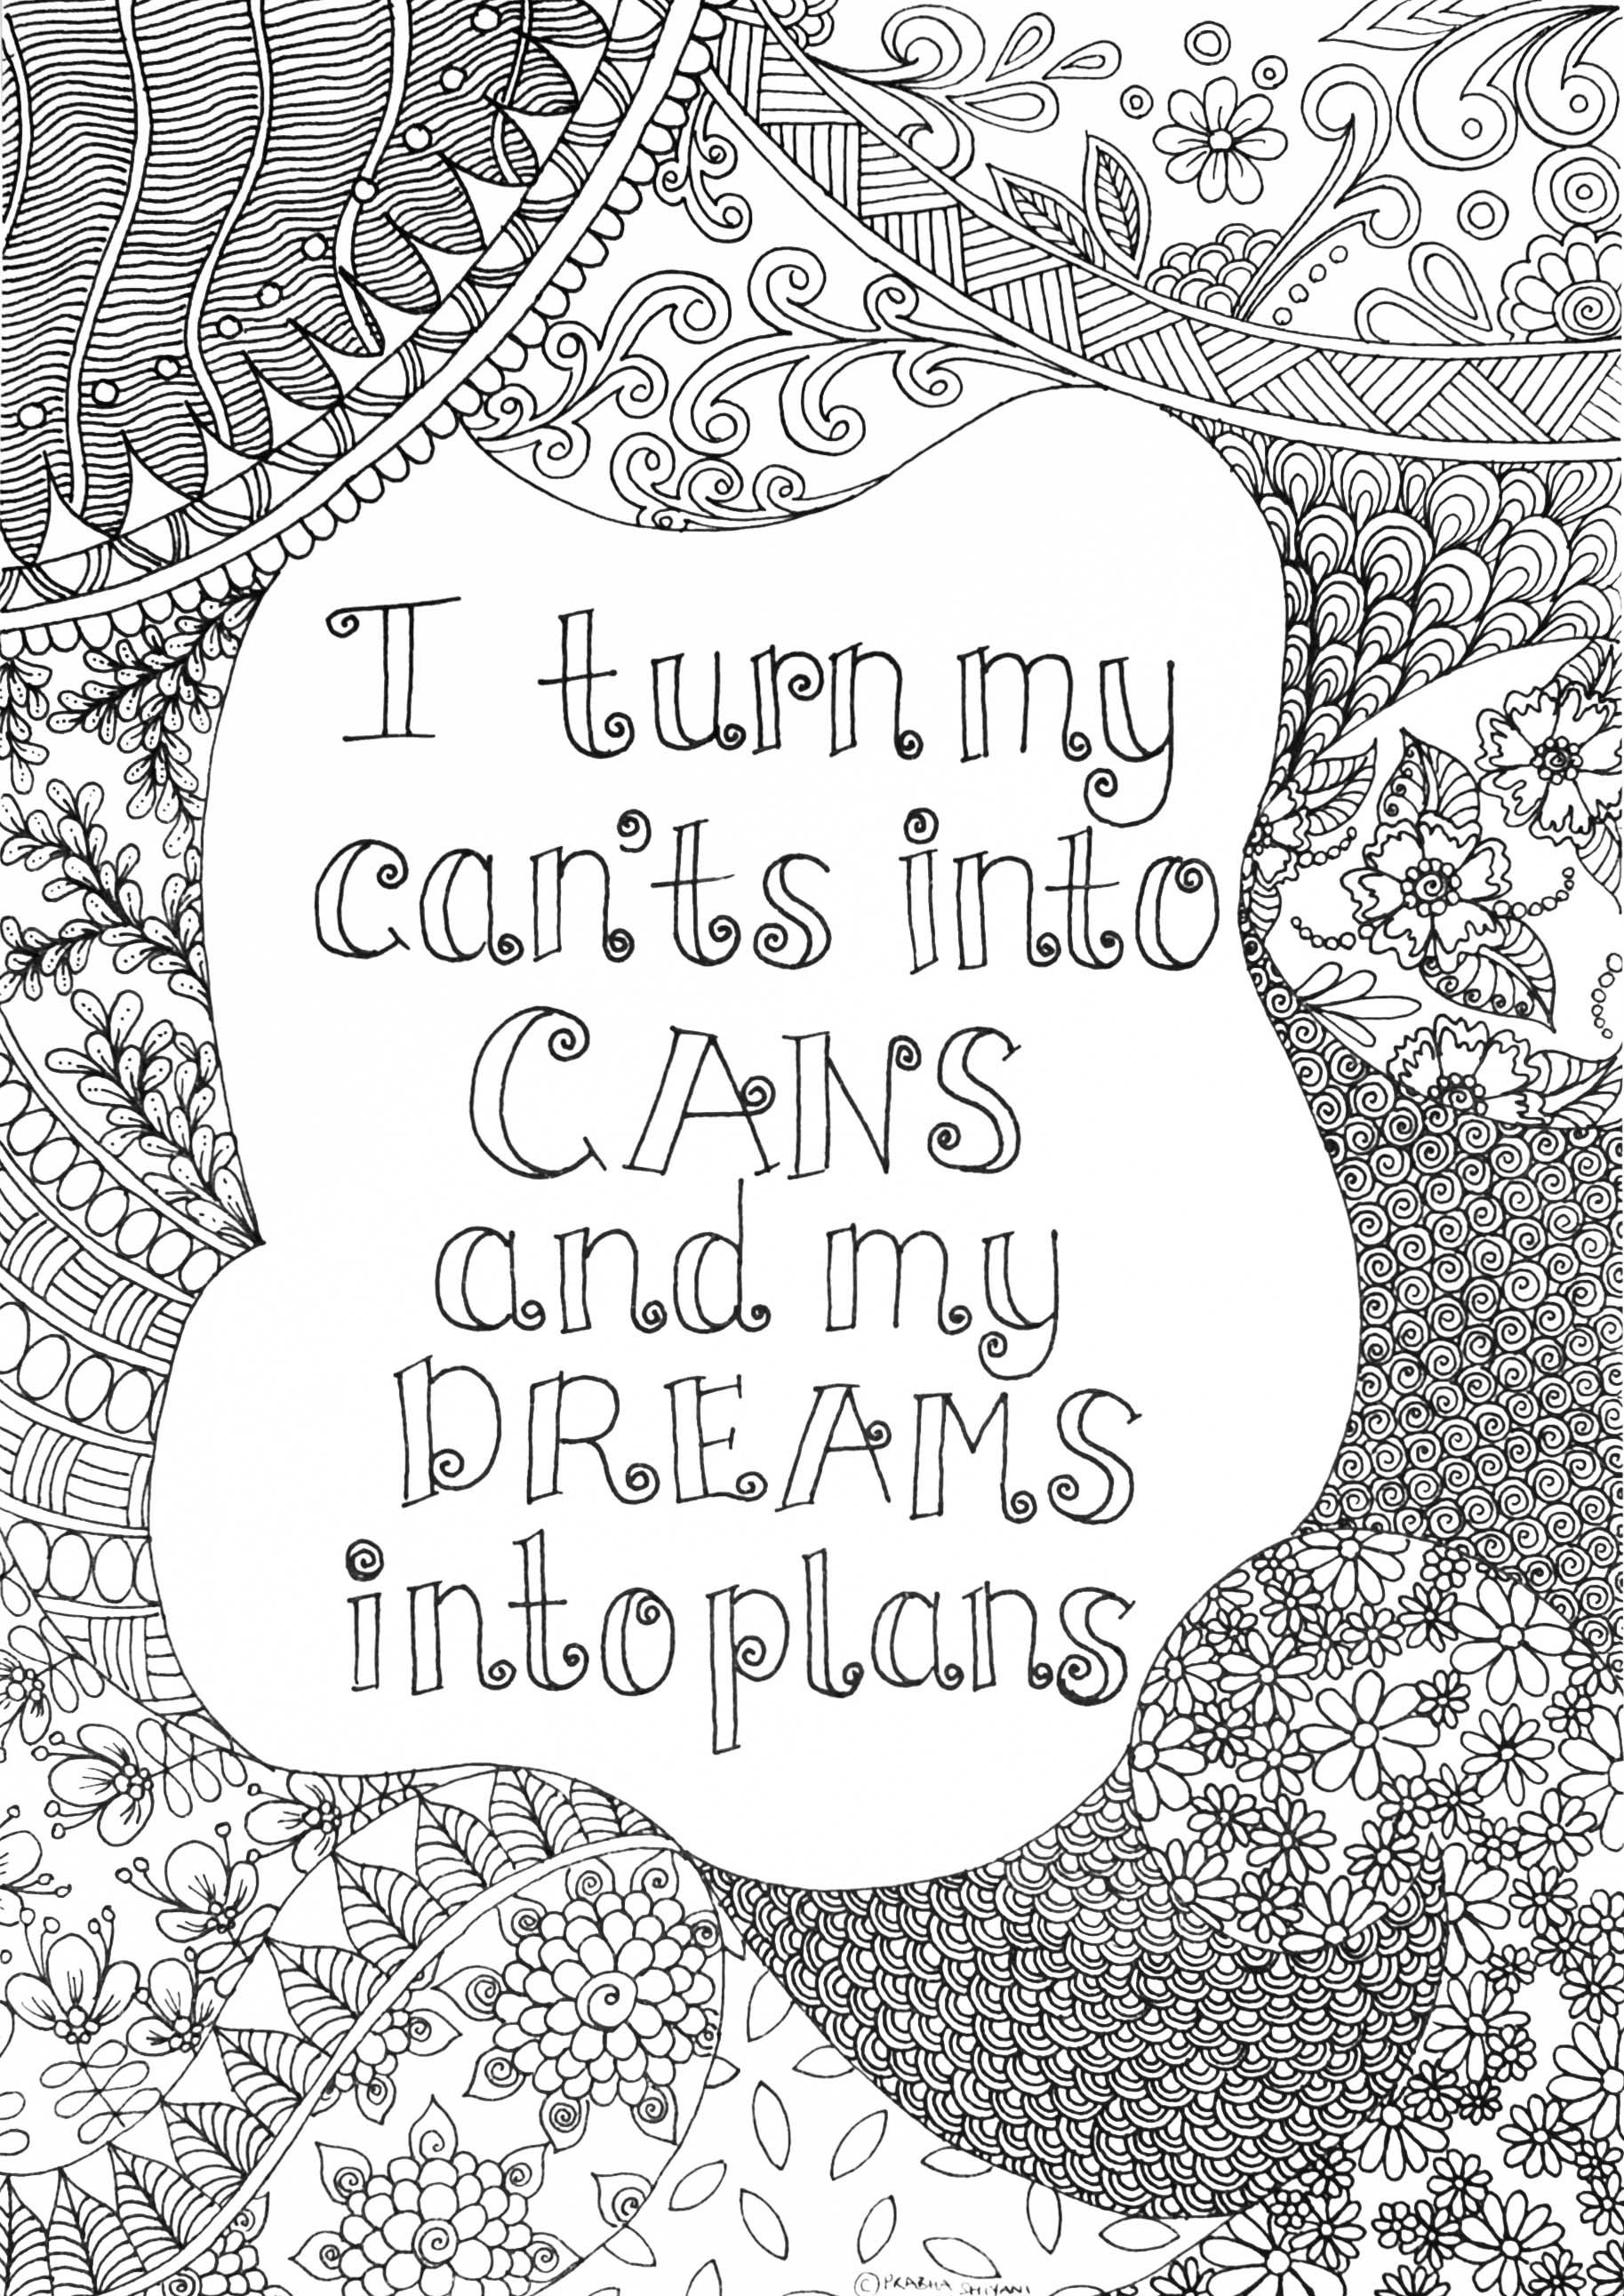 Mindful Affirmation Colouring Book Flourish Wellbeing